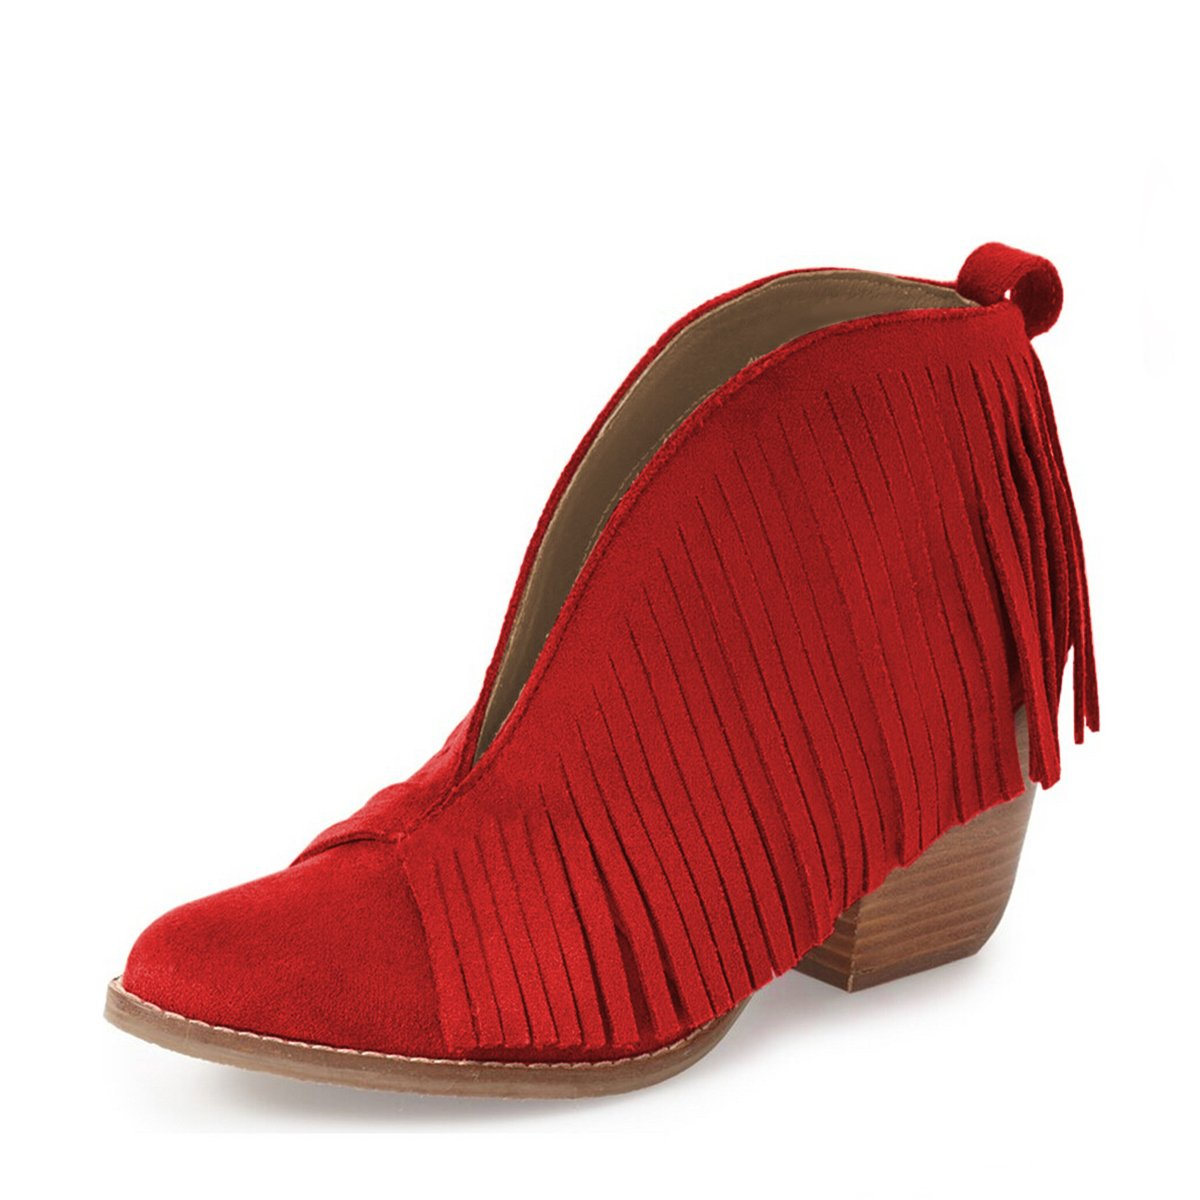 YDN Western Ankle High Boots with Tassels Round Toe Block Heel Suede Retro Booties B01KC29EPC 14 B(M) US|Red